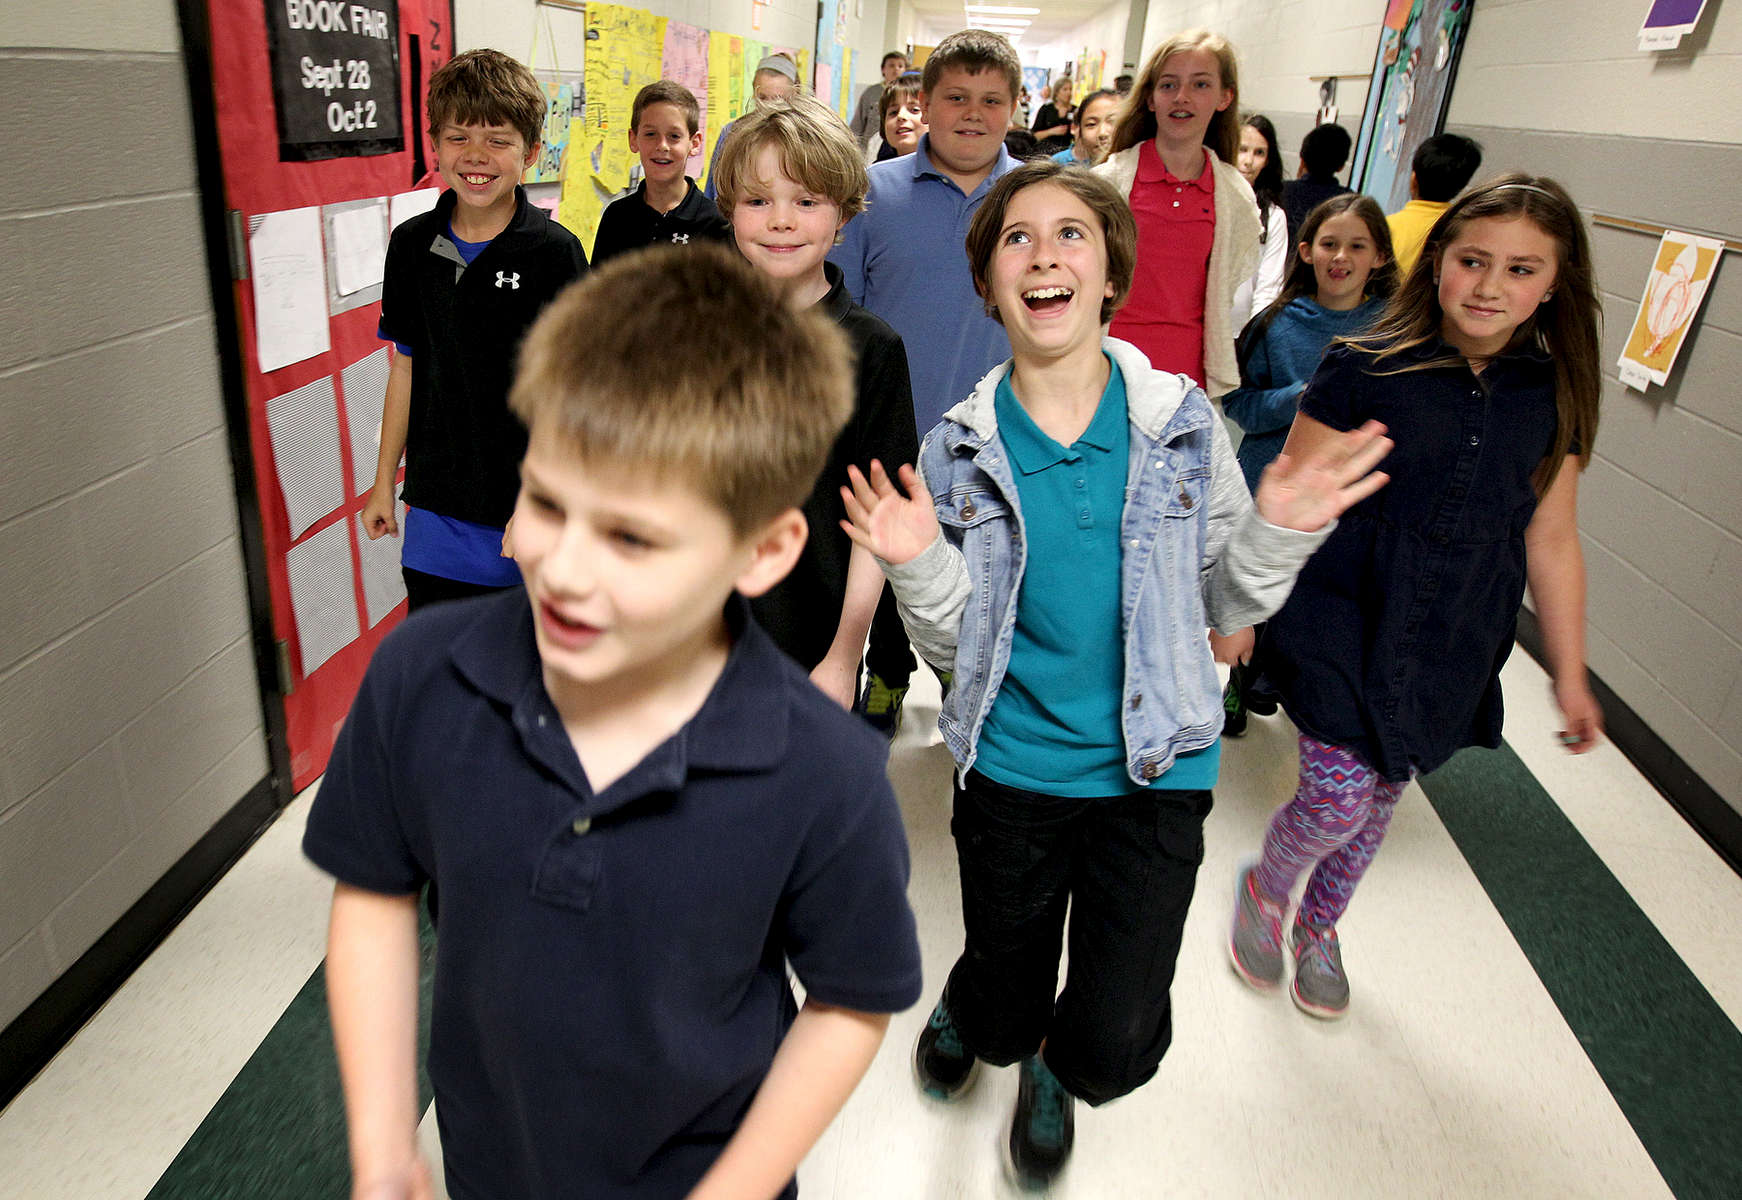 April 7, 2016 - Lori Pound, 11, reacts with joy as she and the rest of her fifth grade class at Farmington Elementary during a scavenger hunt through the halls during Autism Awareness Week at the school. Pound has been diagnosed with Asperger syndrome, an autism spectrum disorder. The school has an above average number of student with autism and held an awareness week not only to inform students about the disorder but also to honor the students who have it. (Mike Brown/The Commercial Appeal)